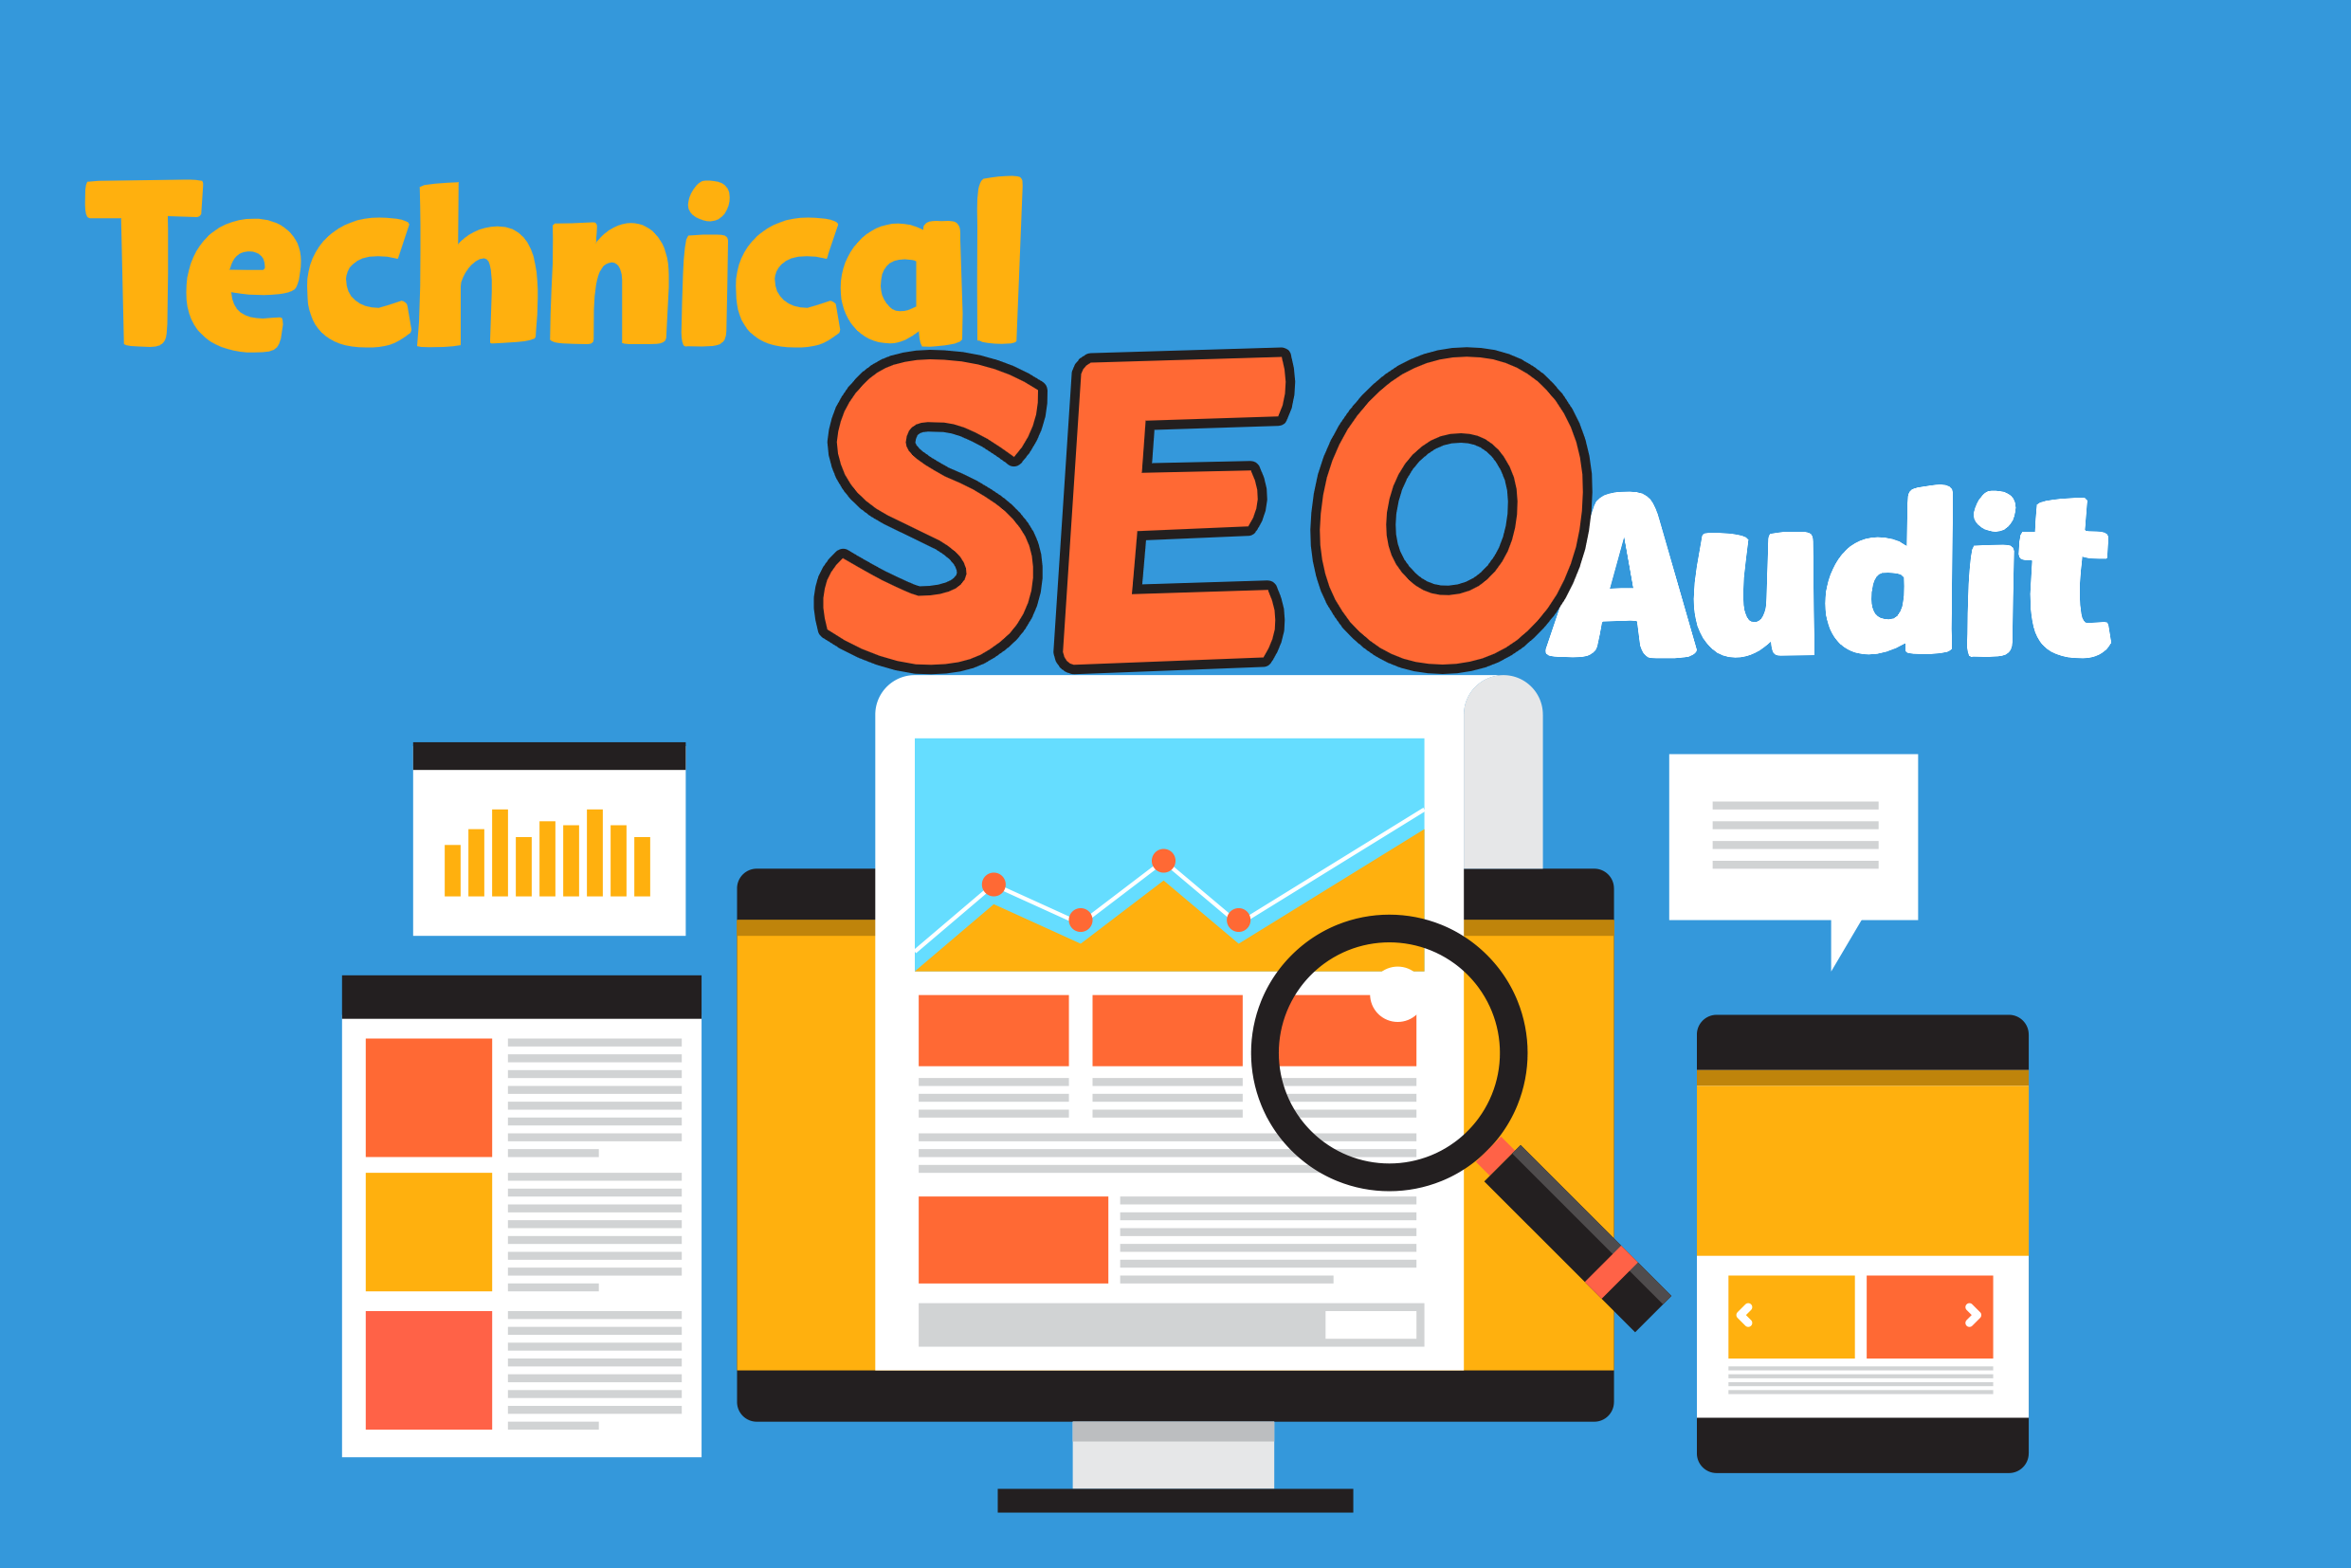 How to Conduct a Technical SEO audit for a website in 4 steps